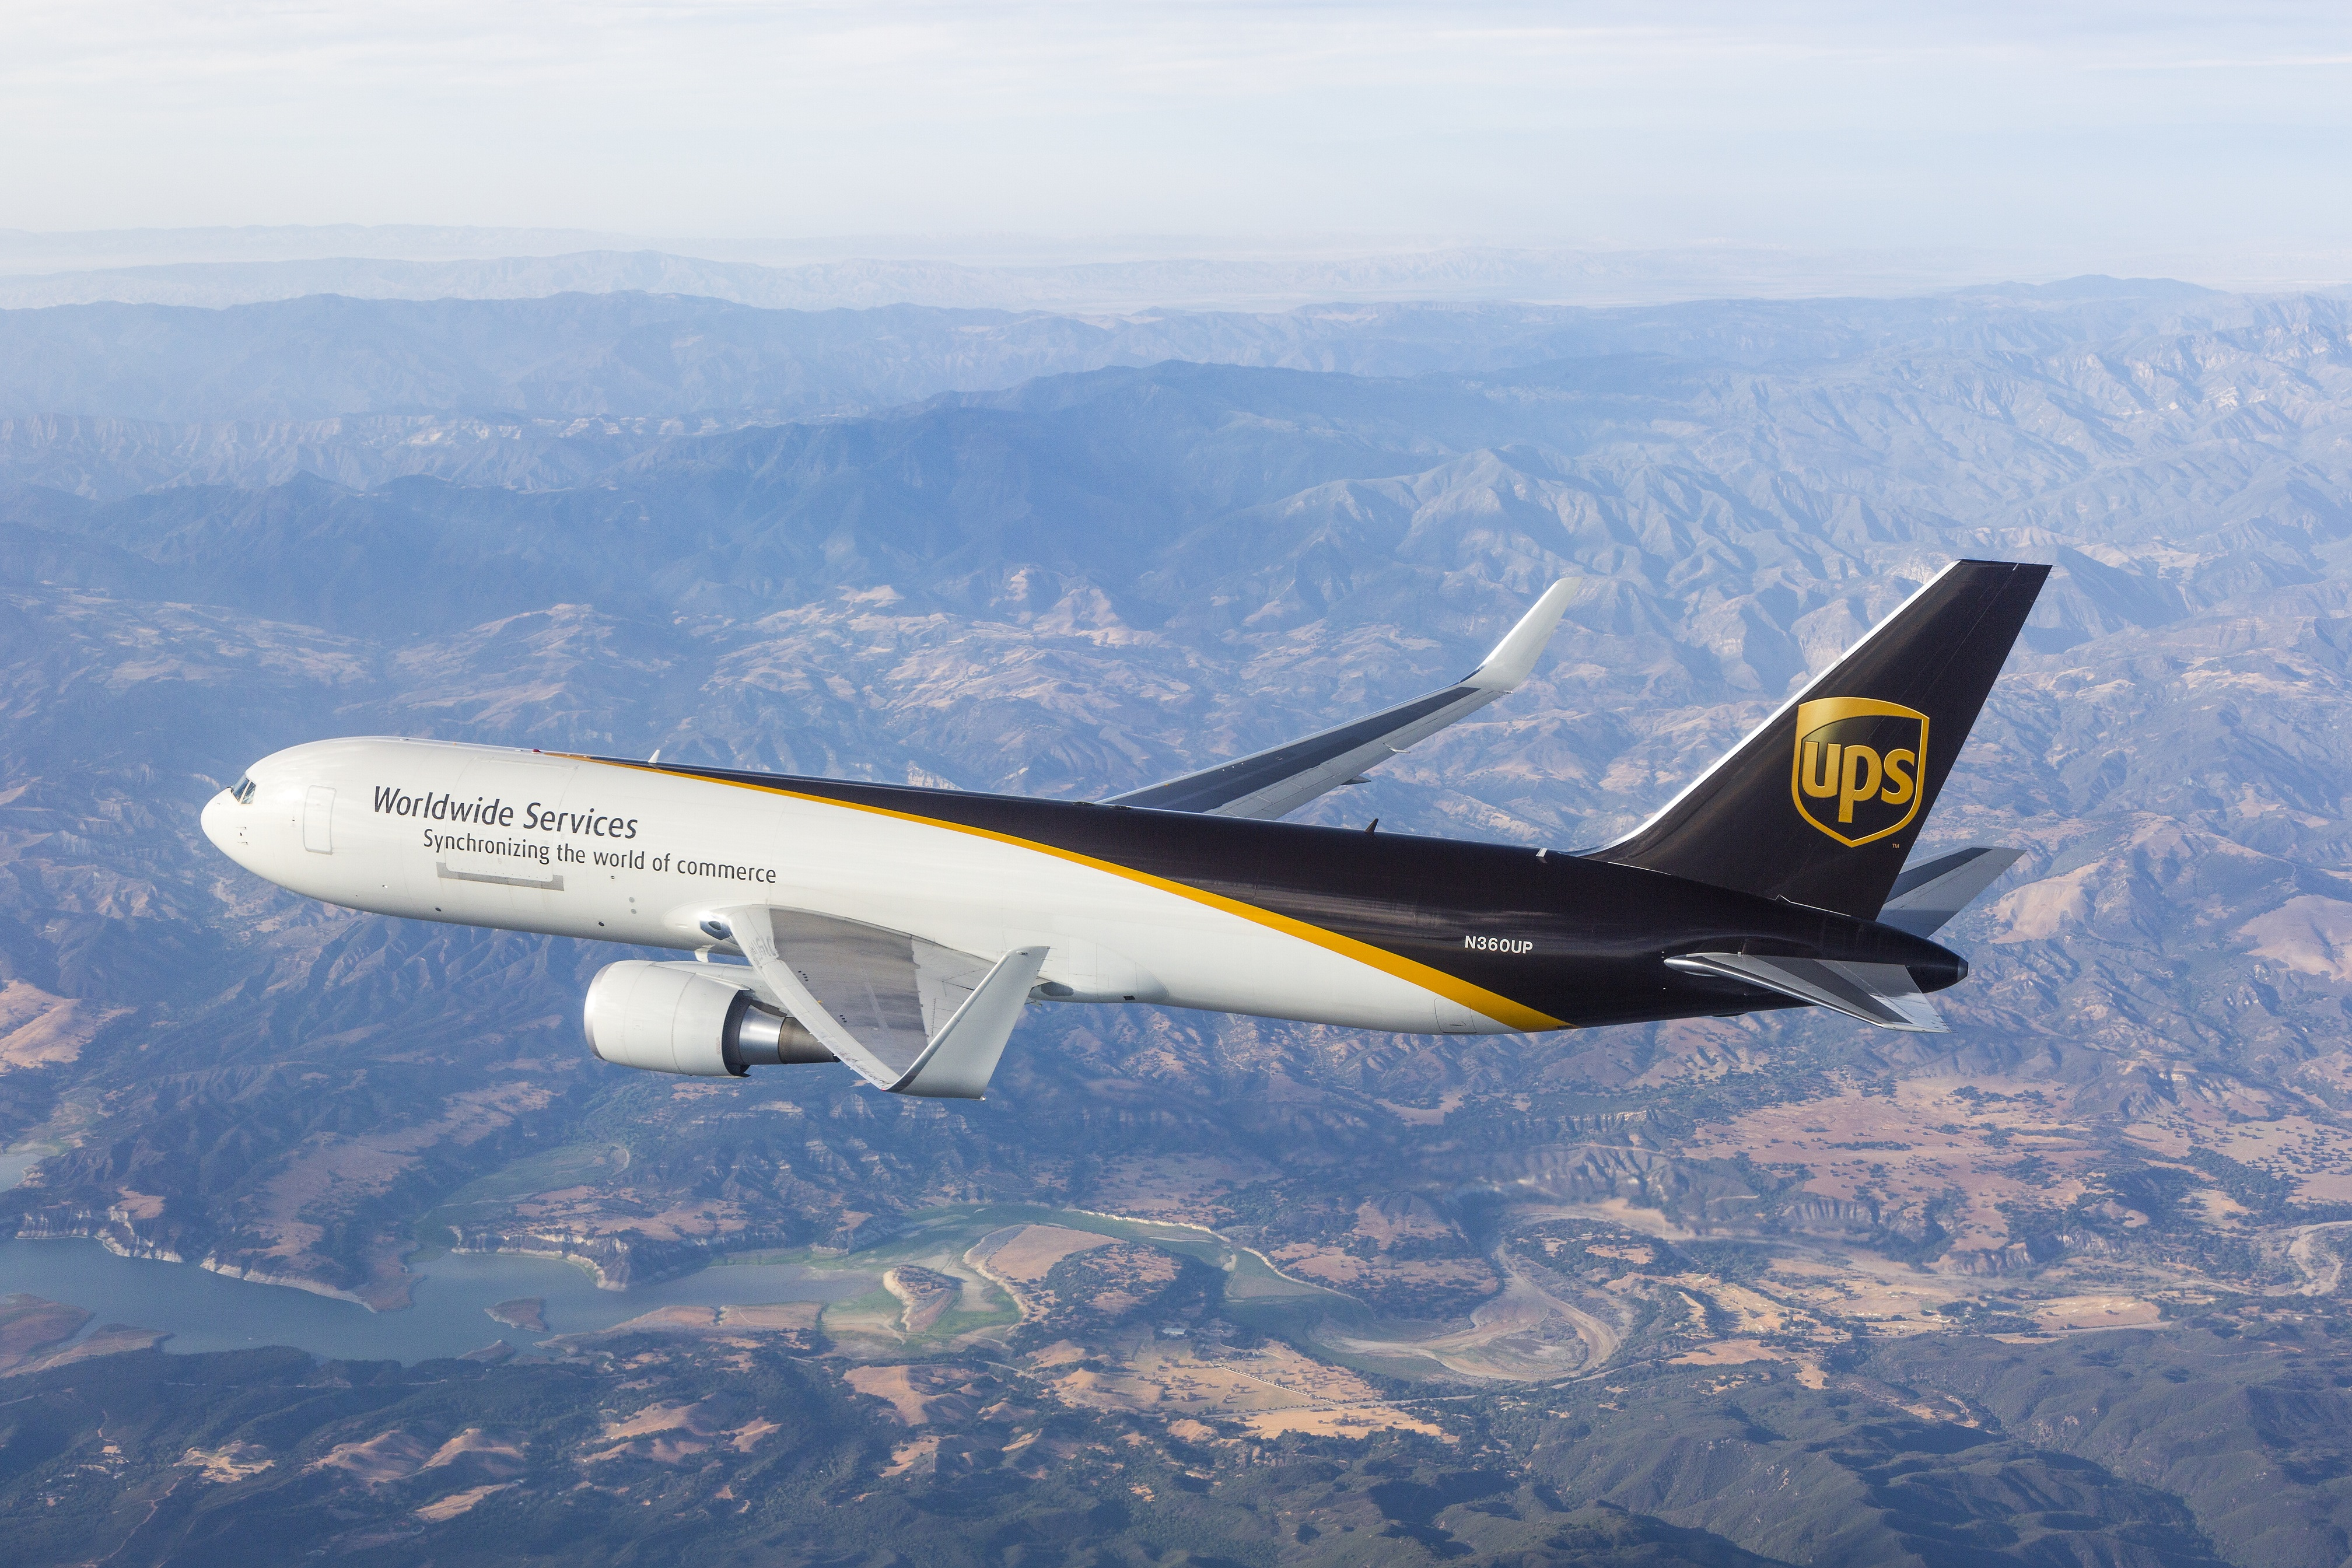 UPS has expanded its global dangerous goods shipping